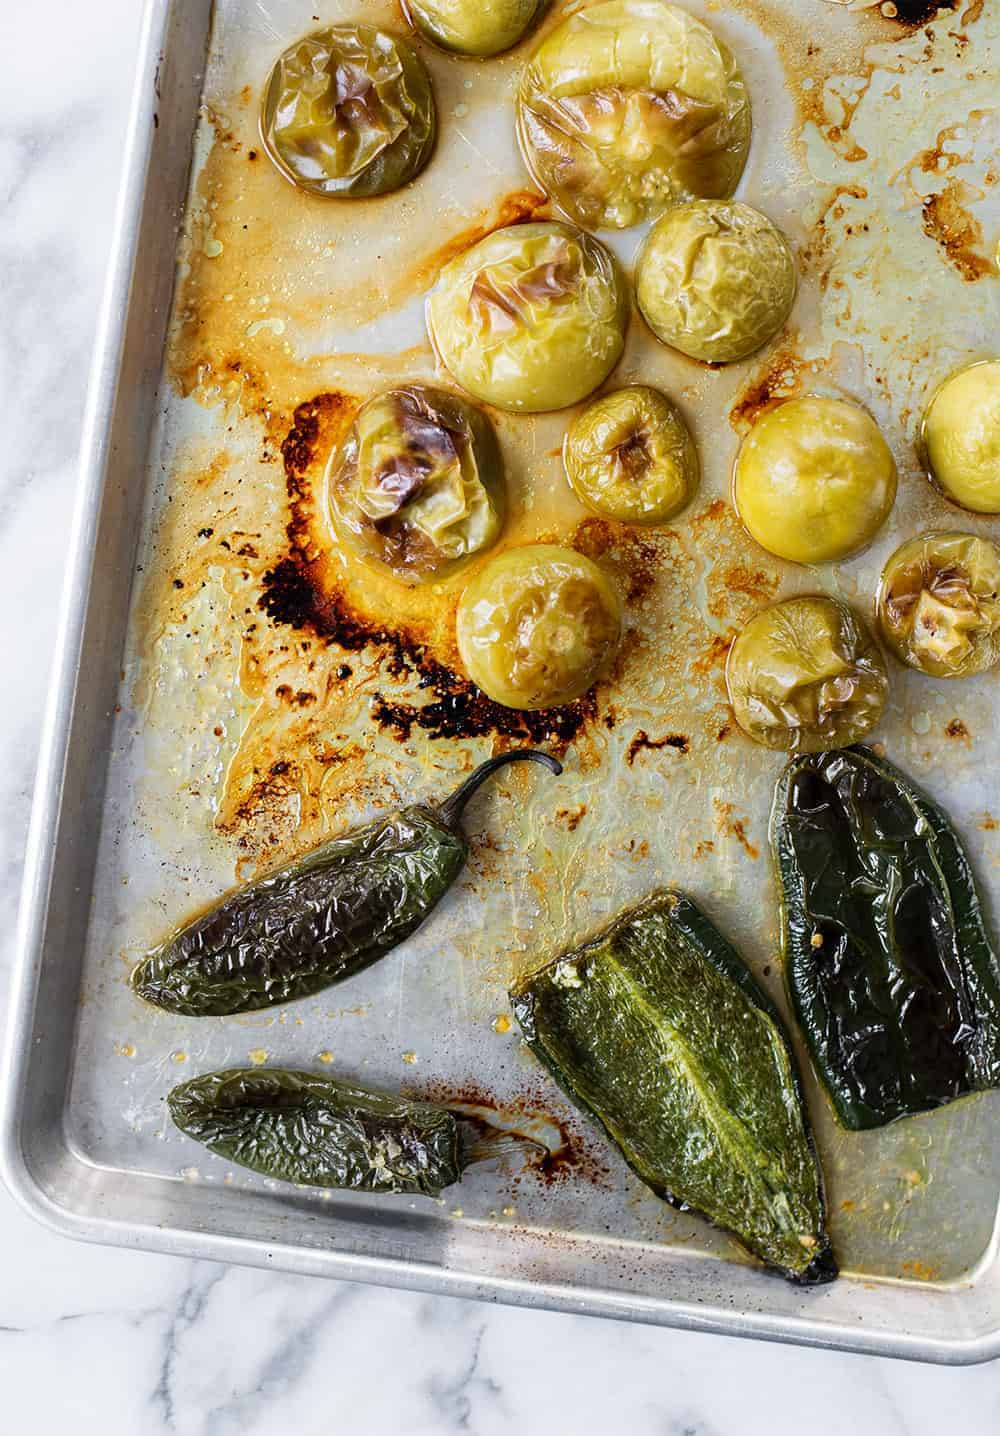 sheet pan of roasted tomatillos, jalapenos and poblano peppers